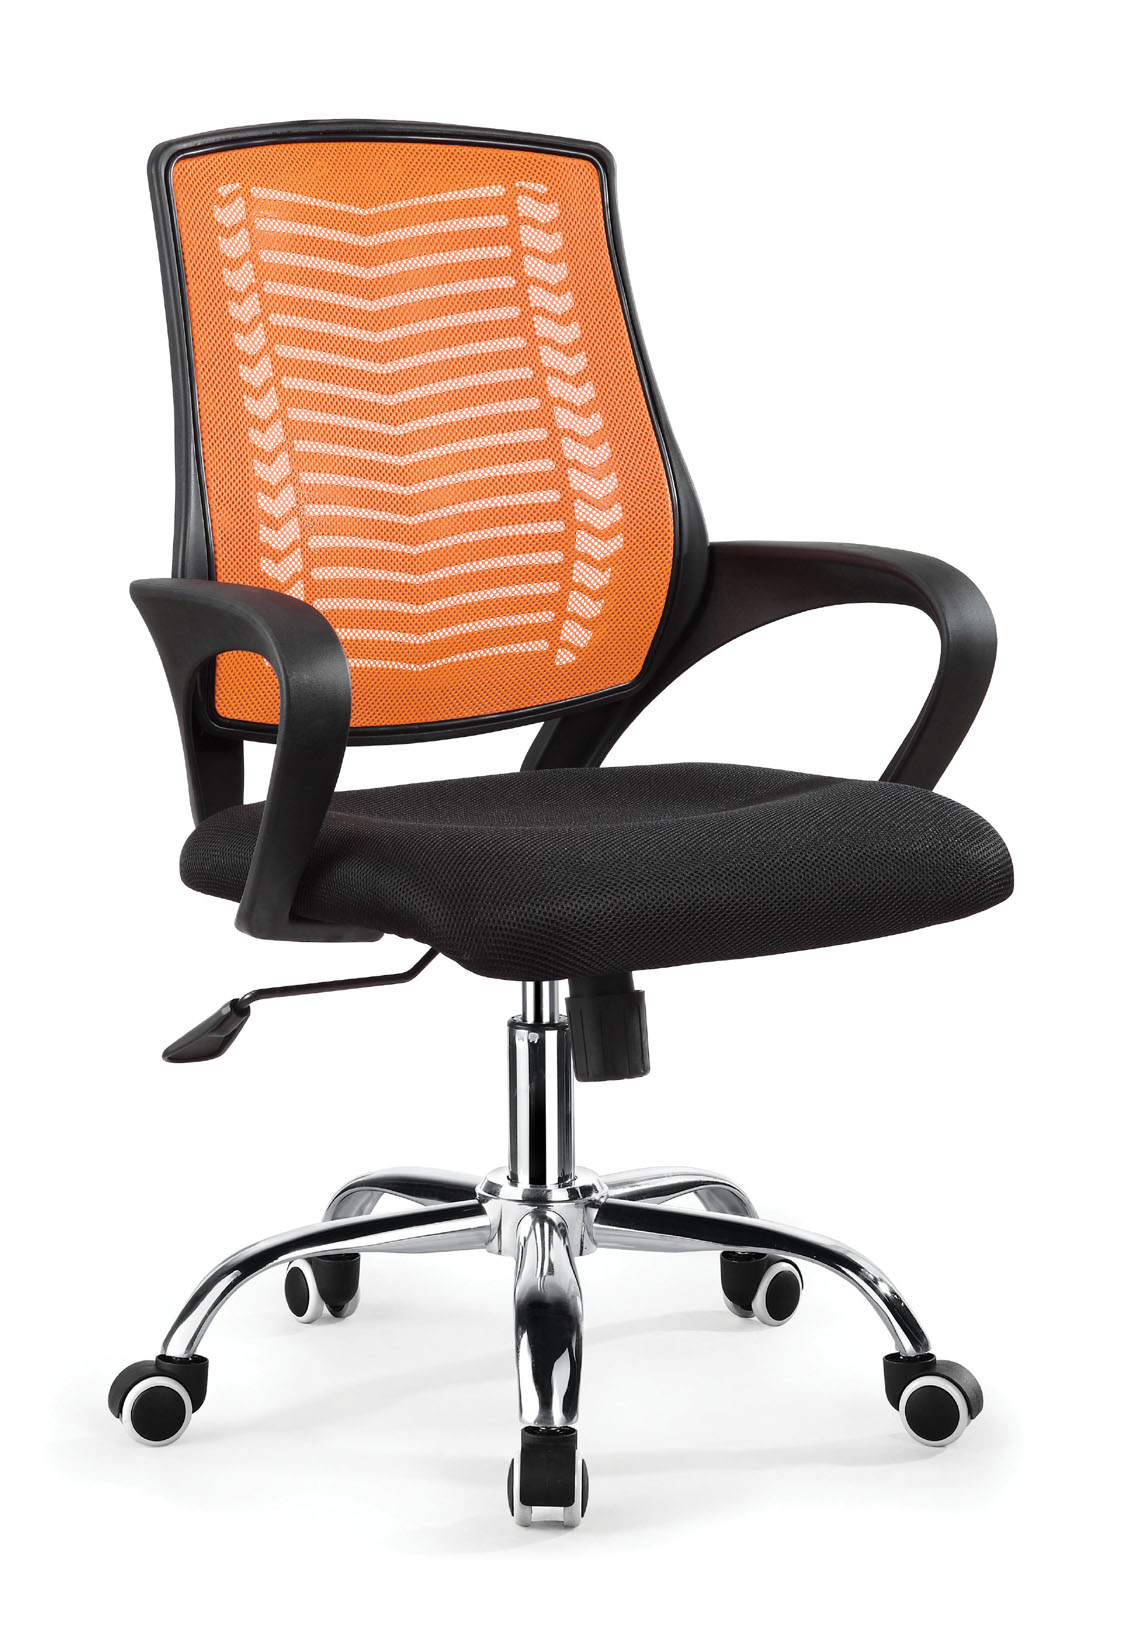 Buy ZHSMC-08P Swivel Office Chair With Colored Painted